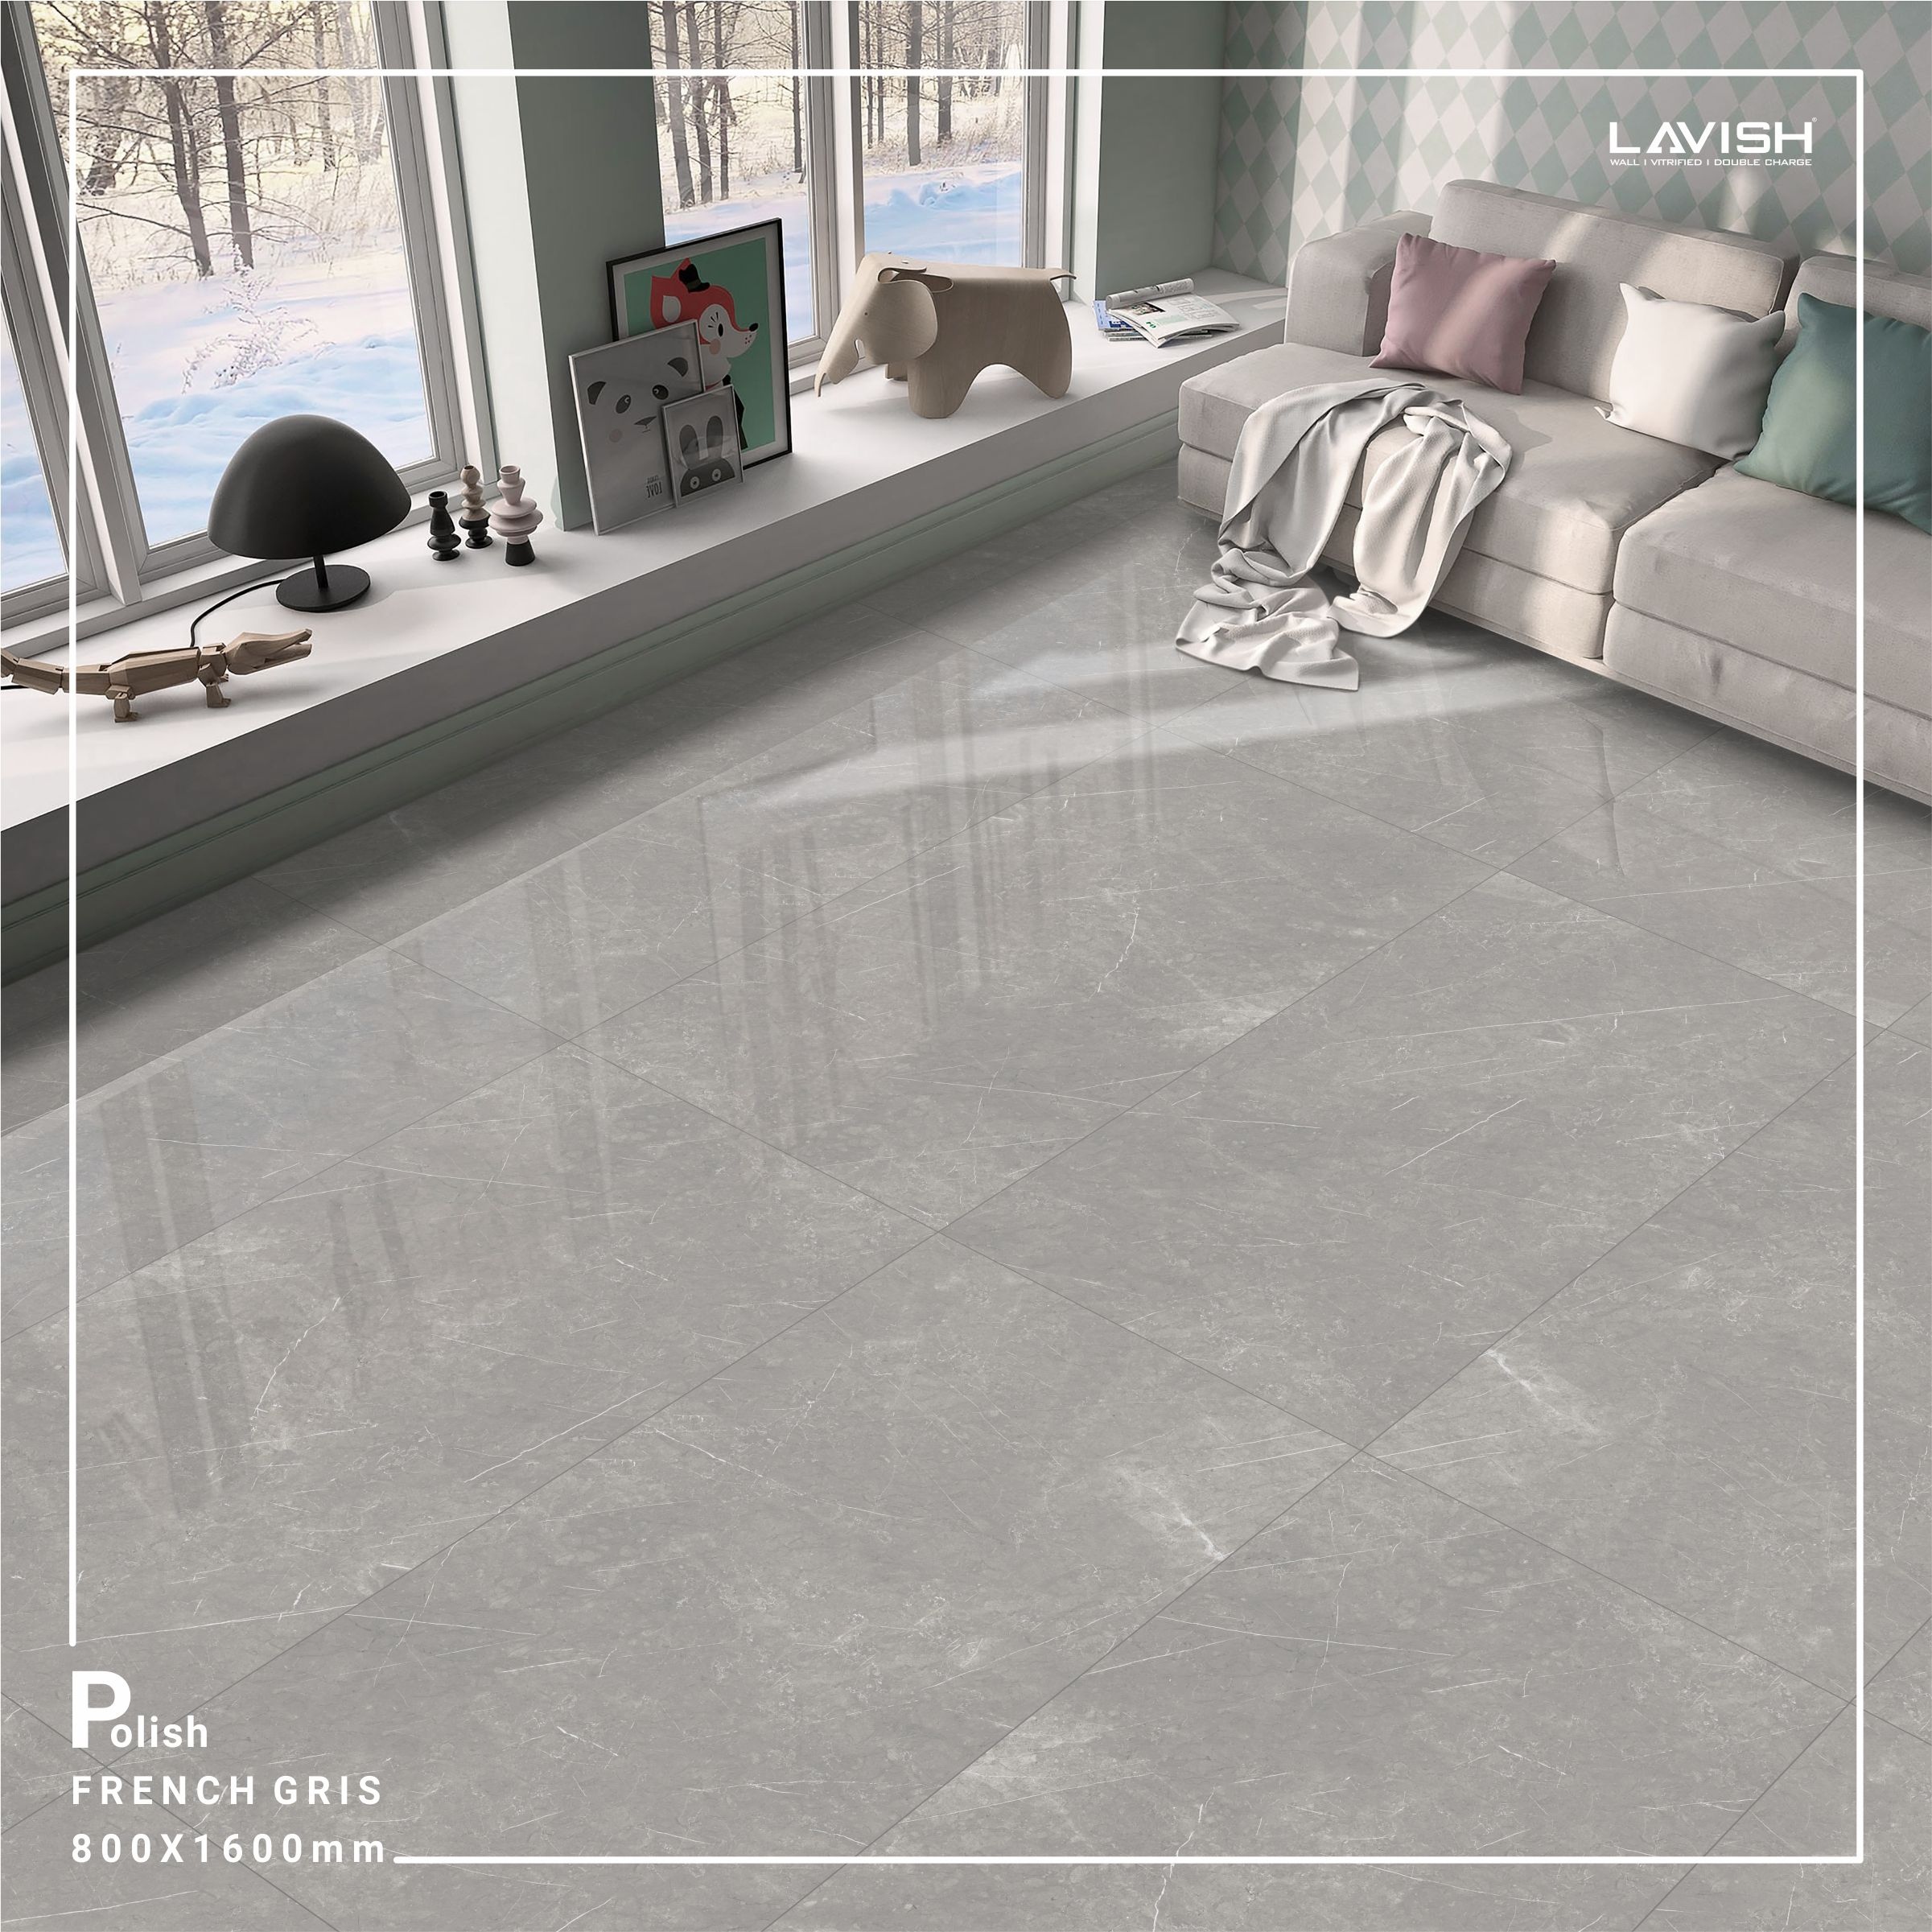 Design Your Living Room With Polish French Gris 800x1600mm In 2020